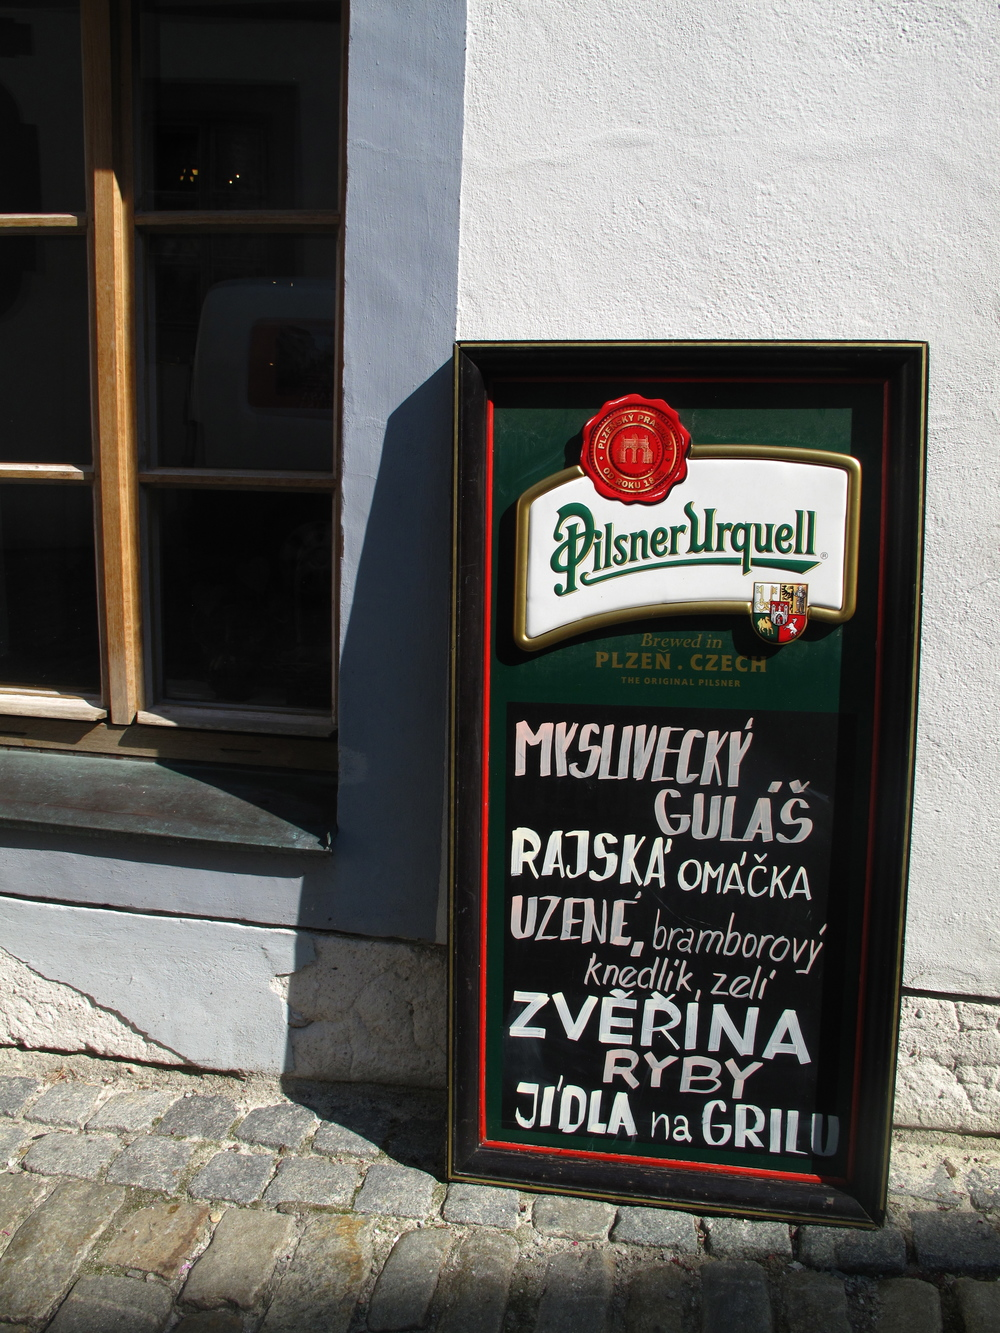 Pilsner Urquell pub sign in Cesky Krumlov, Czech Republic